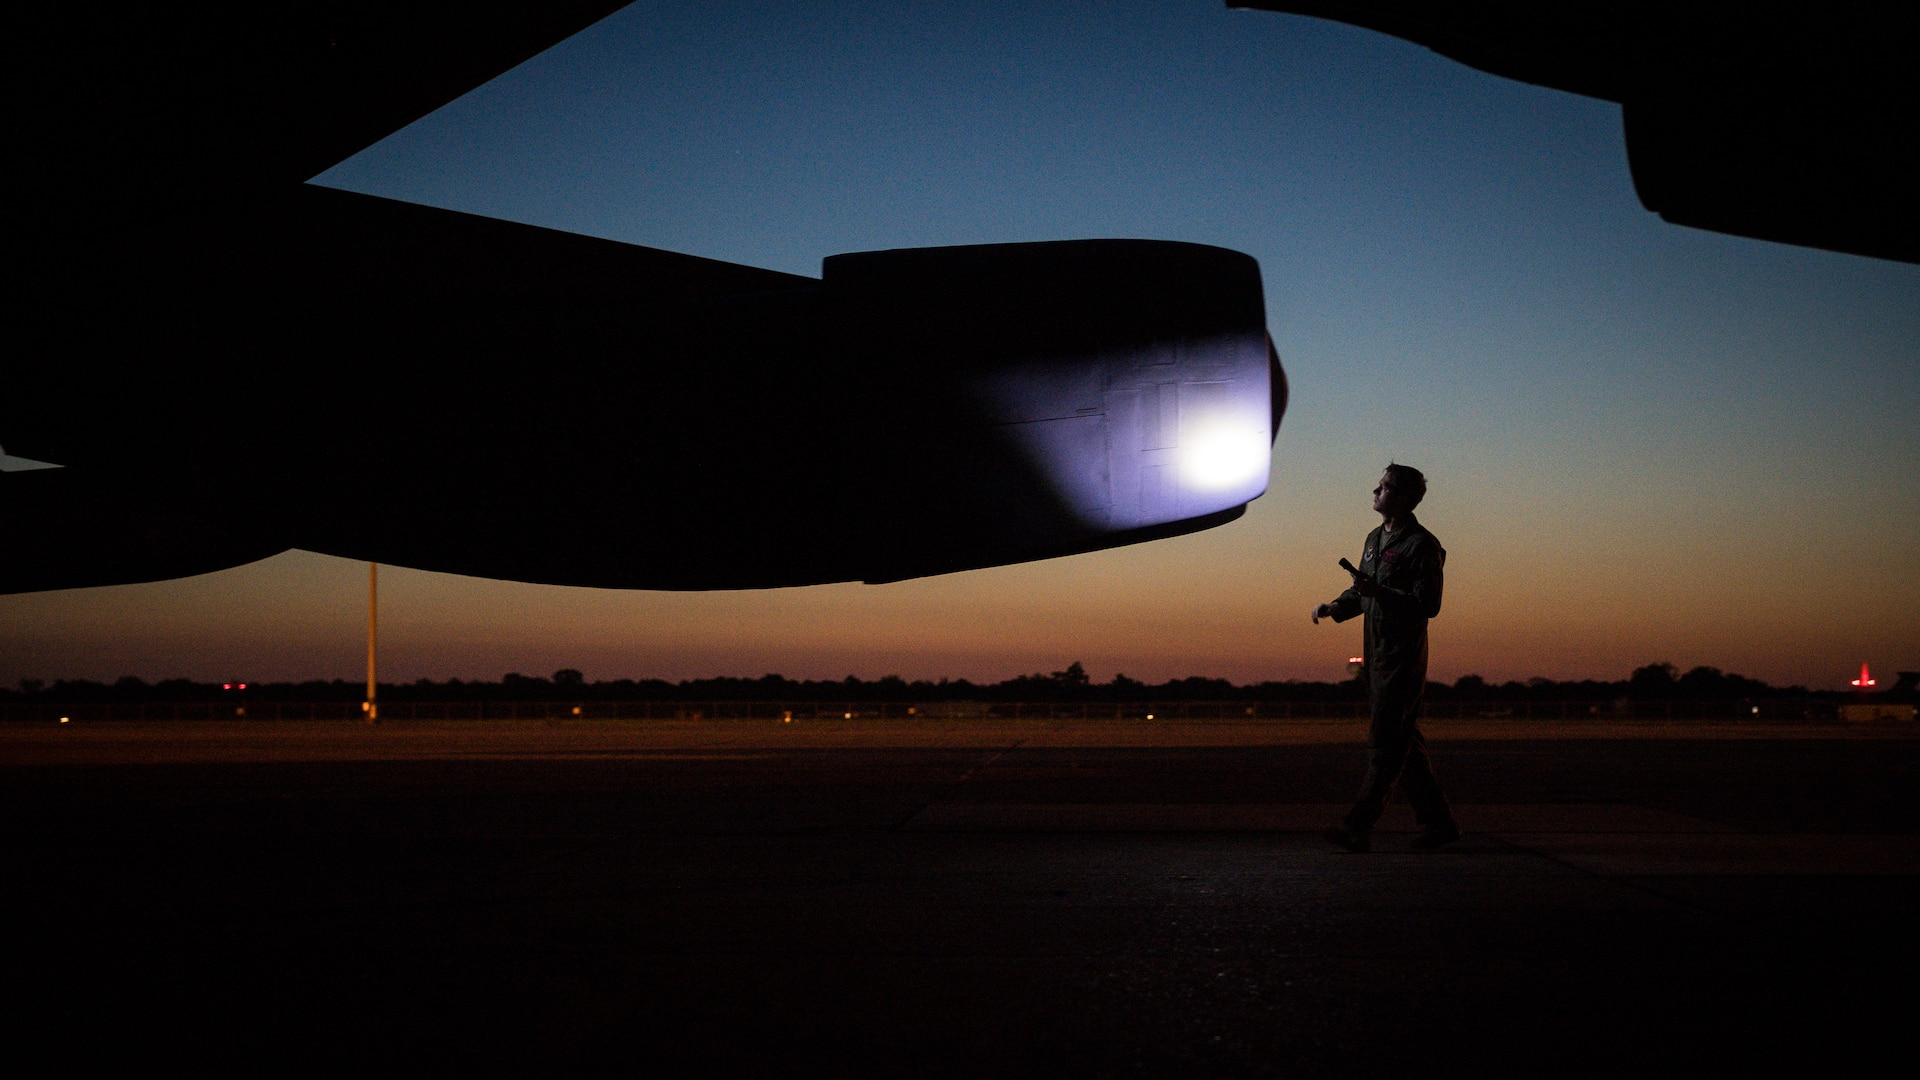 Capt. Mike Brogan, 96th Bomb Squadron pilot, inspects a B-52H Stratofortress while preparing for take off at Barksdale Air Force Base, La., May 7, 2020. Long-range, strategic bomber missions demonstrate the U.S capability to command, control and conduct strategic bomber missions around the globe, demonstrating U.S. commitment to allies and partners, the credibility and flexibility of our forces to address today's complex, dynamic and volatile global security environment.